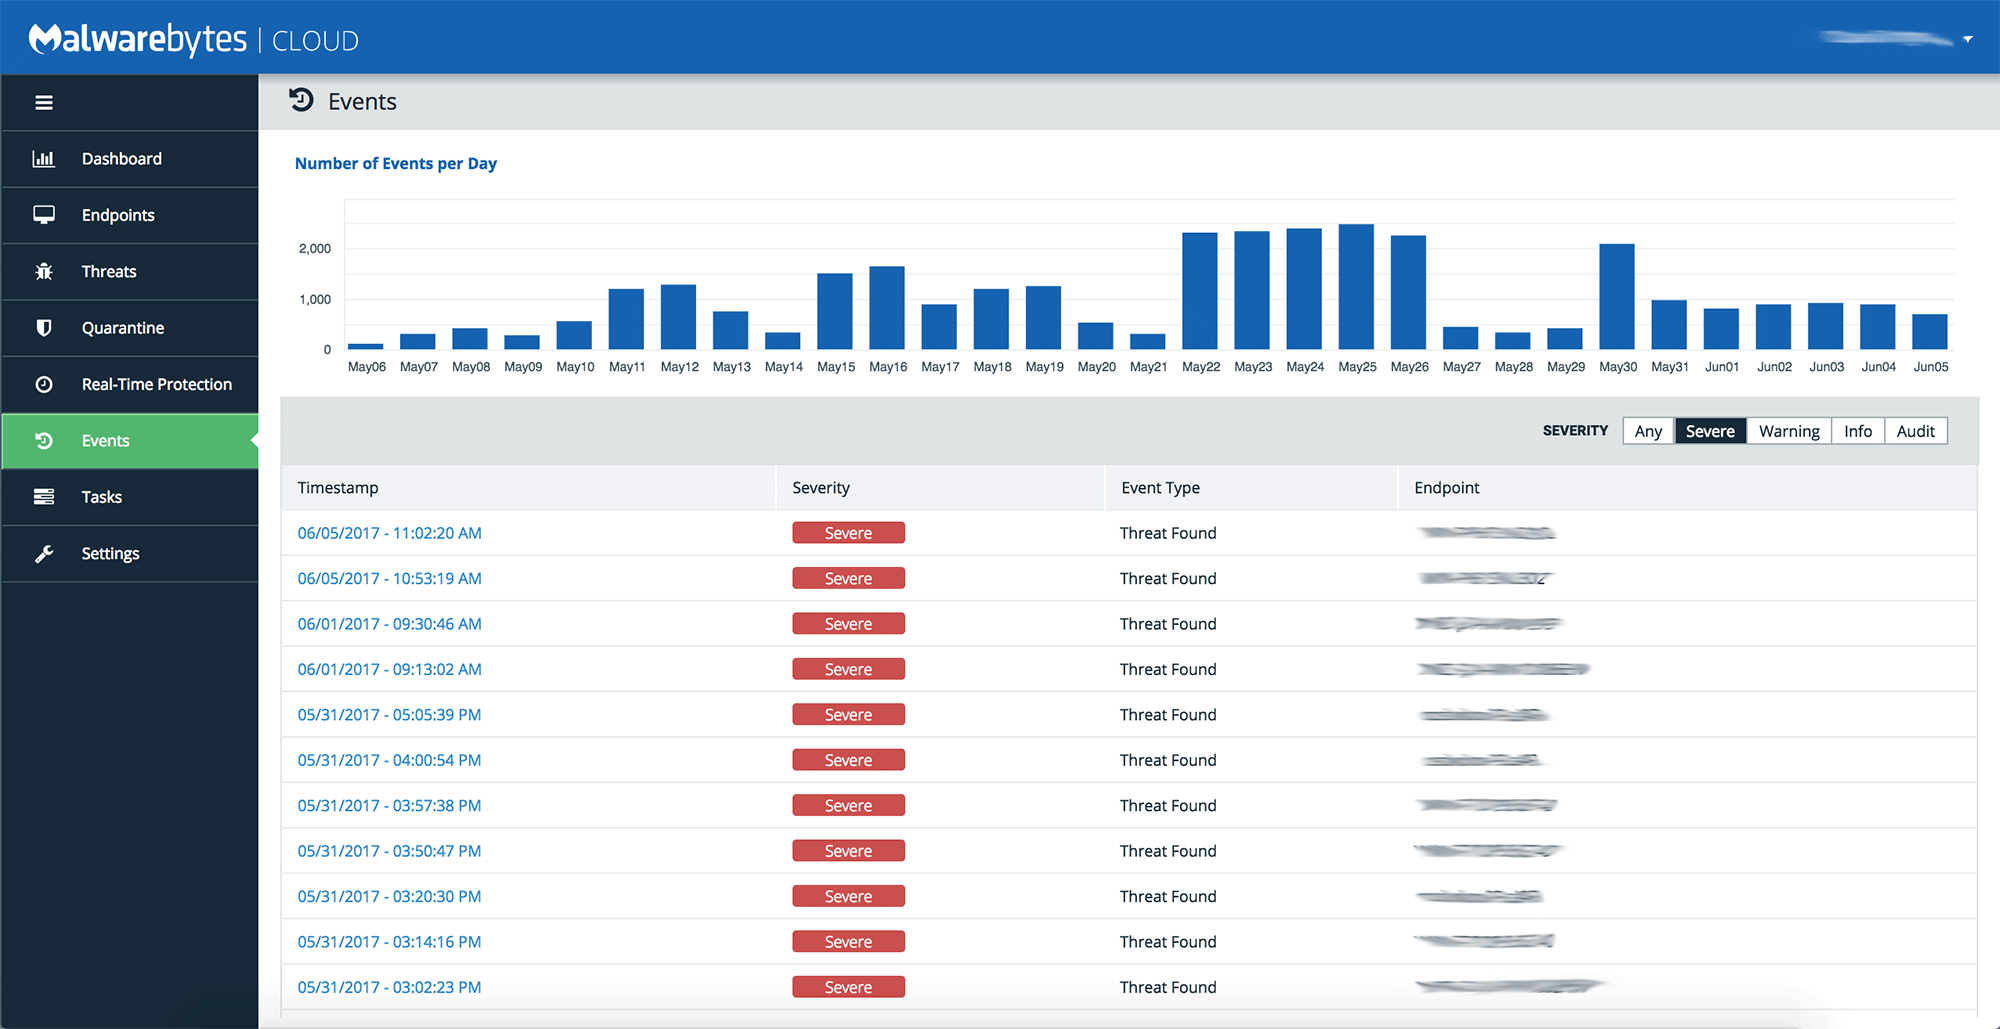 Malwarebytes cloud platform - Events